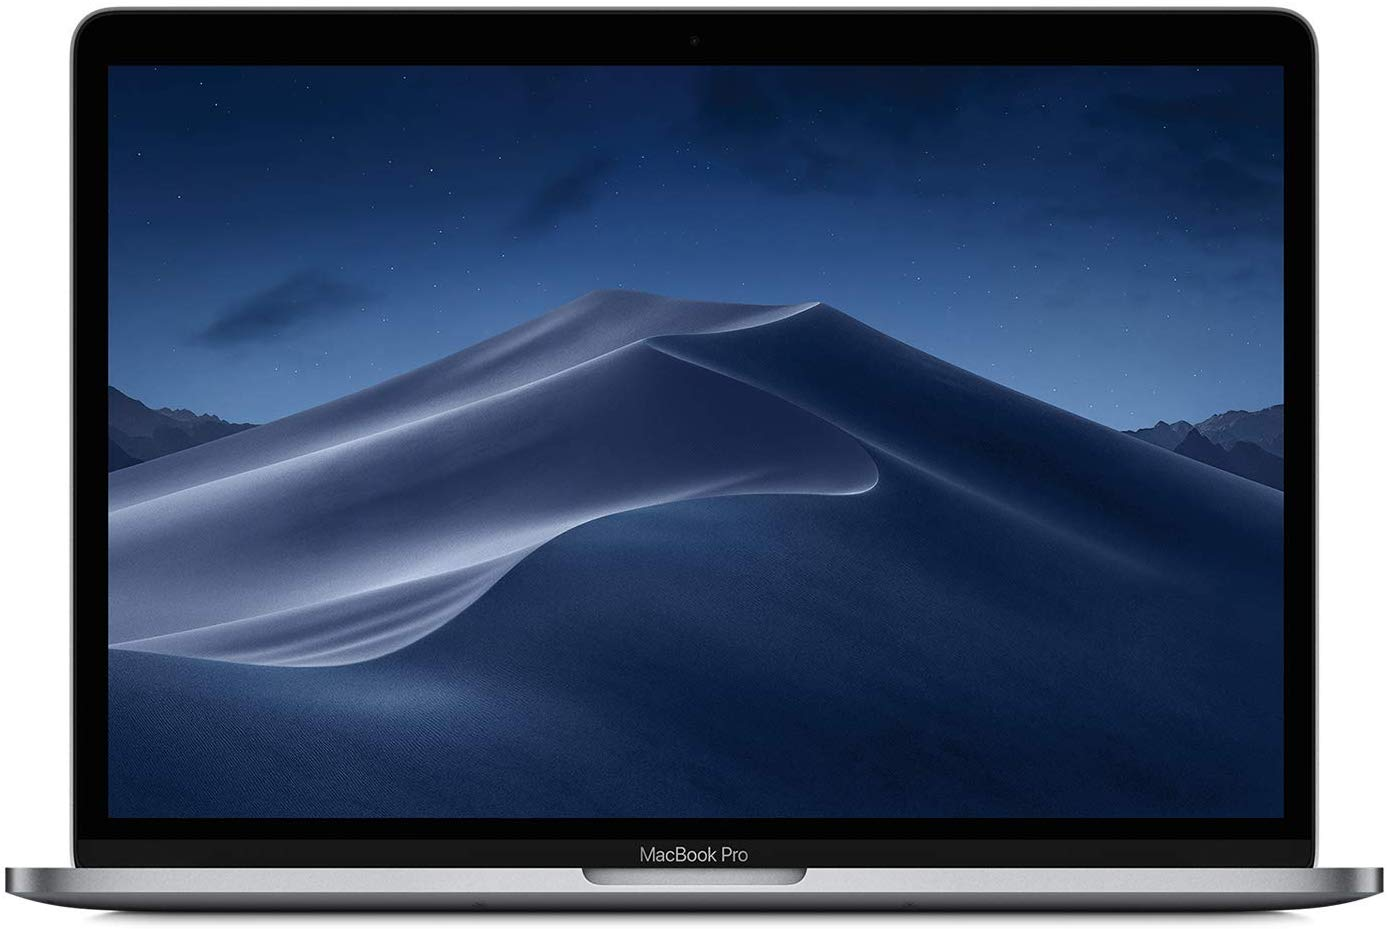 Apple Thunderbolt 3: All you need to know about Mac Thunderbolt 3 Devices 3